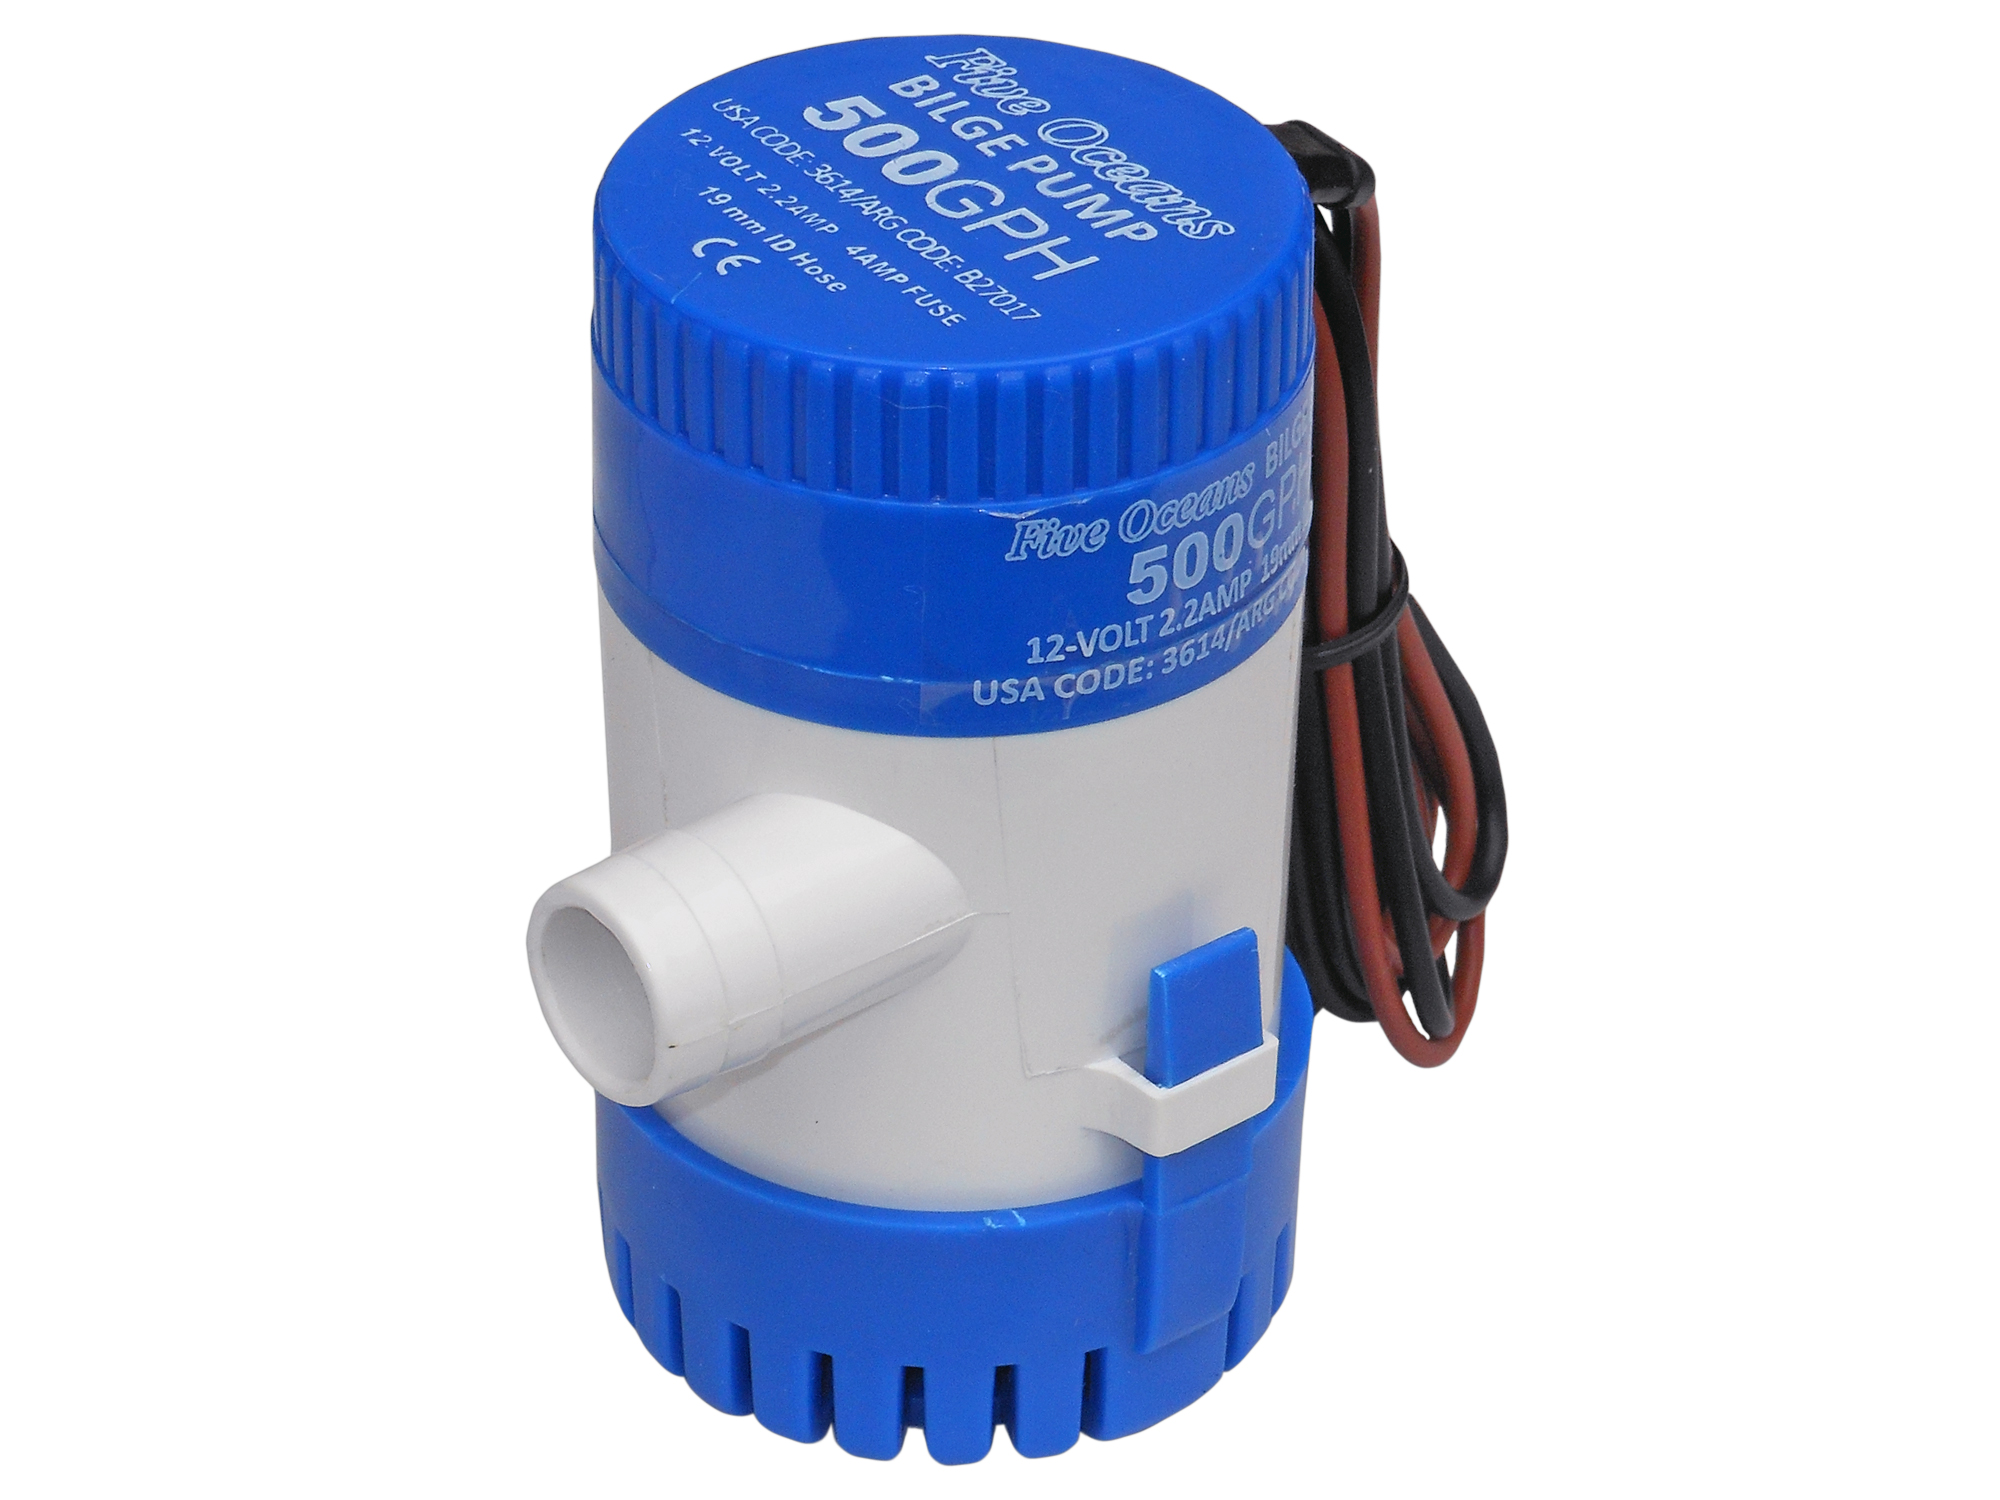 Marine Electric Bilge Pump 12v. 500 gph for Boat, Caravan Five Oceans BC 3614 by Seaflo by